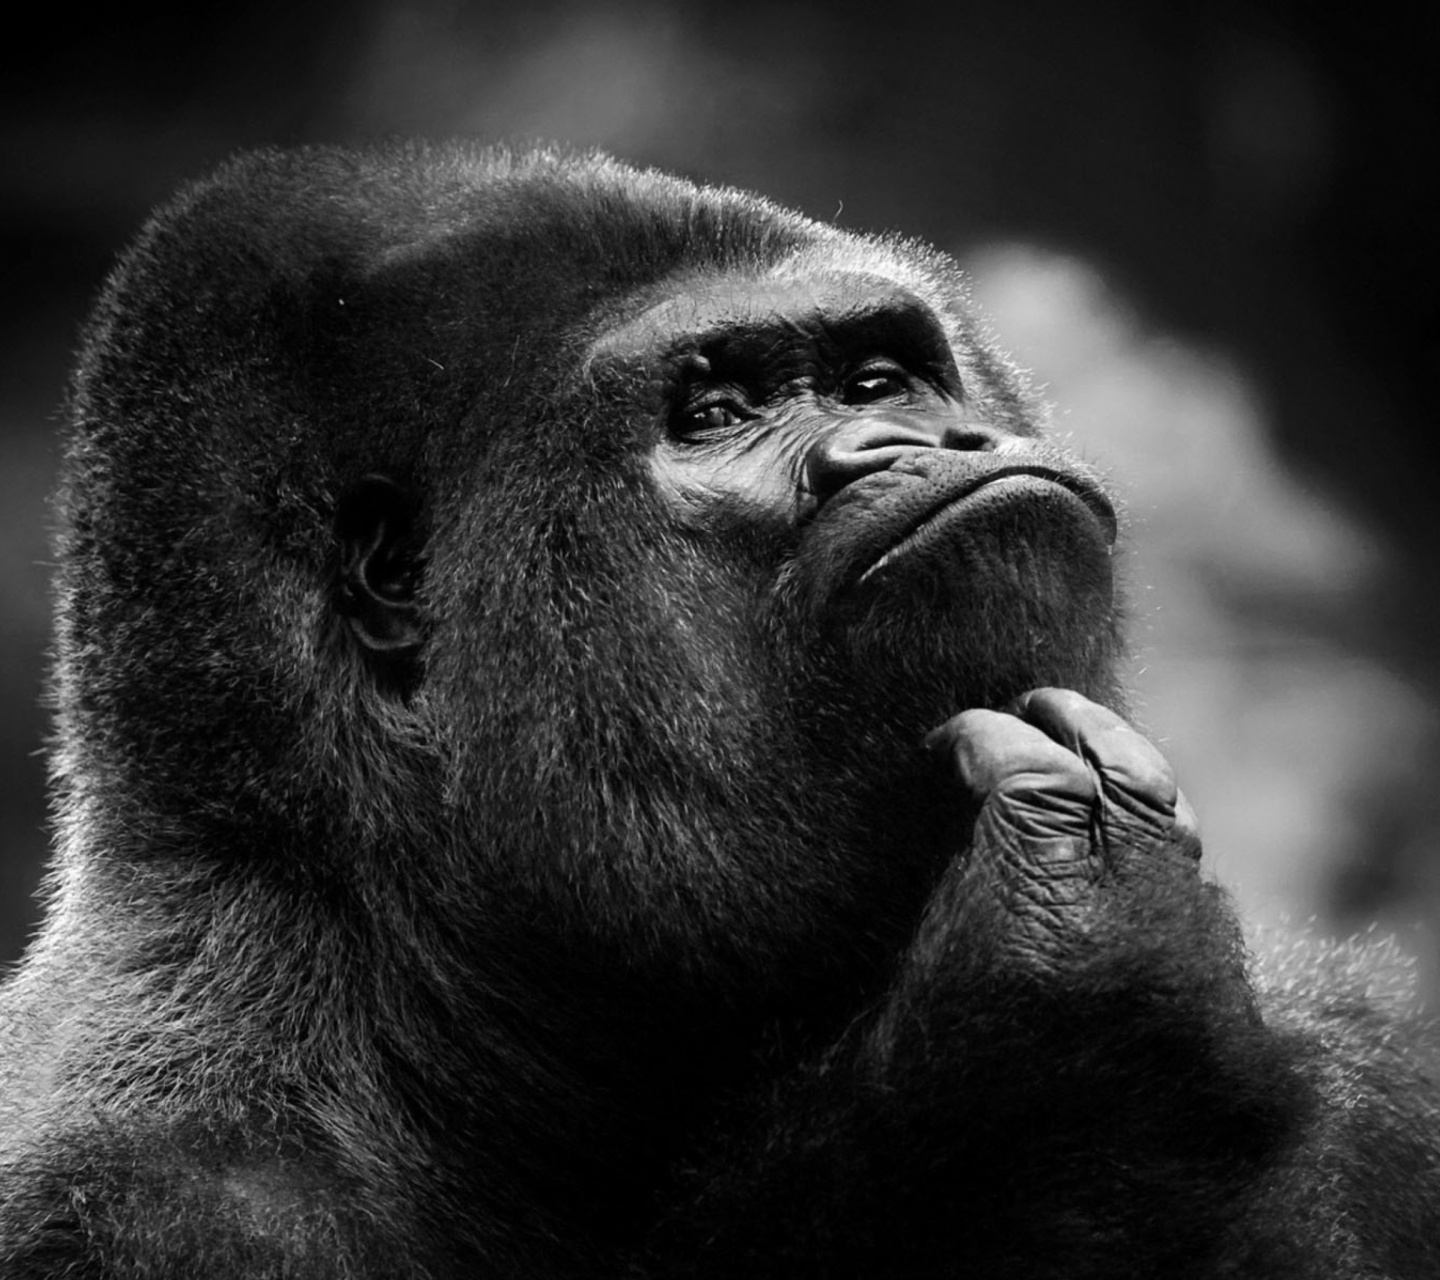 gorilla_pensando-wallpaper-10039419